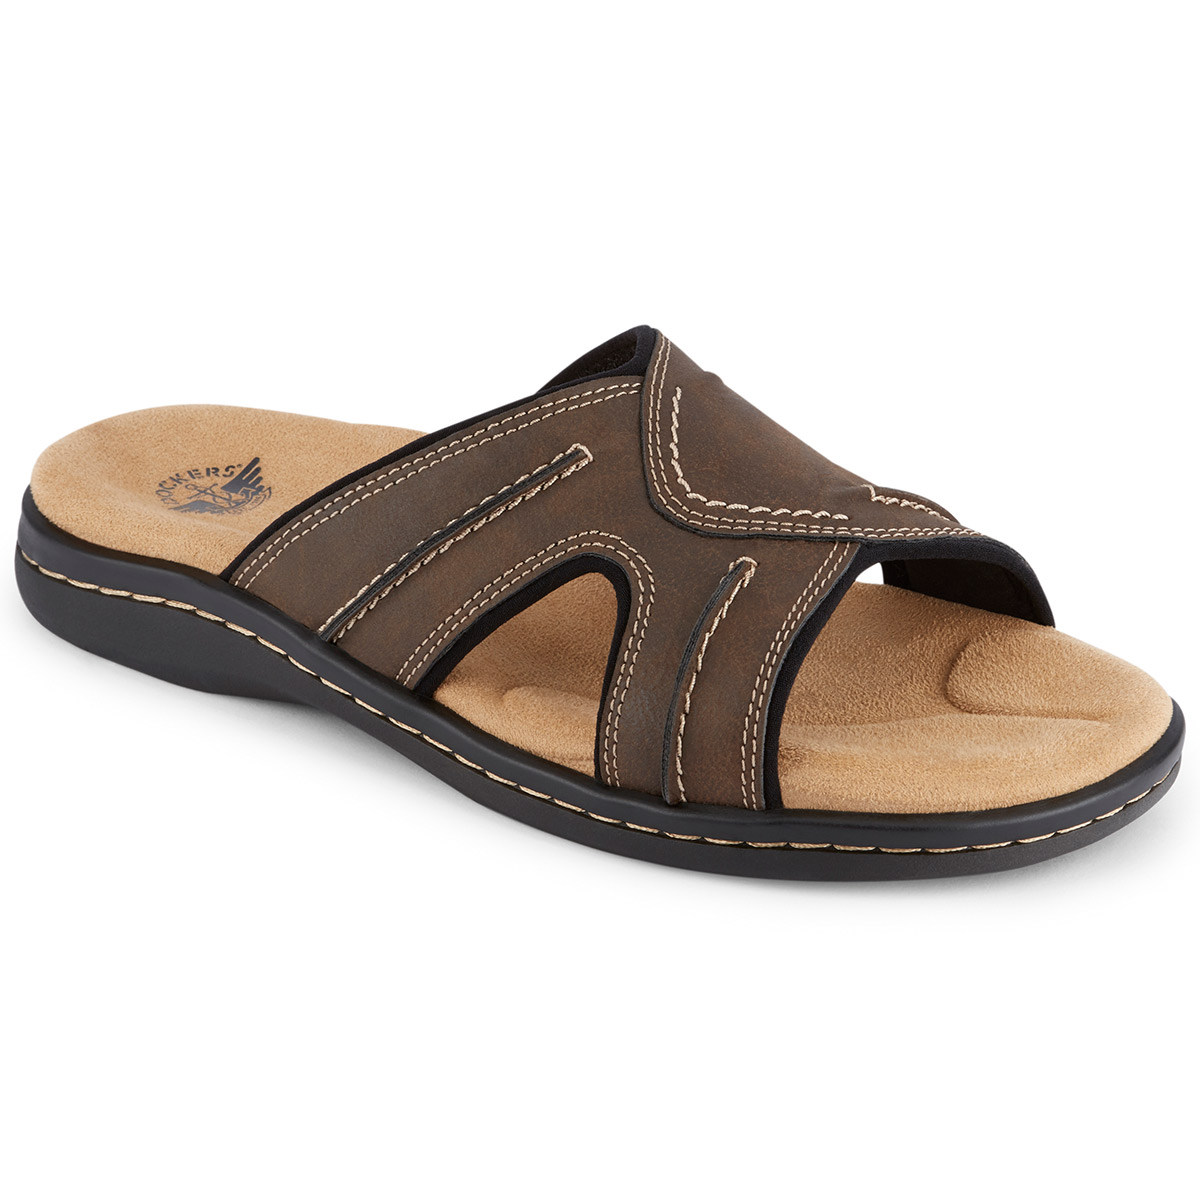 Dockers Men's Sunland Slide Sandal - Brown, 10